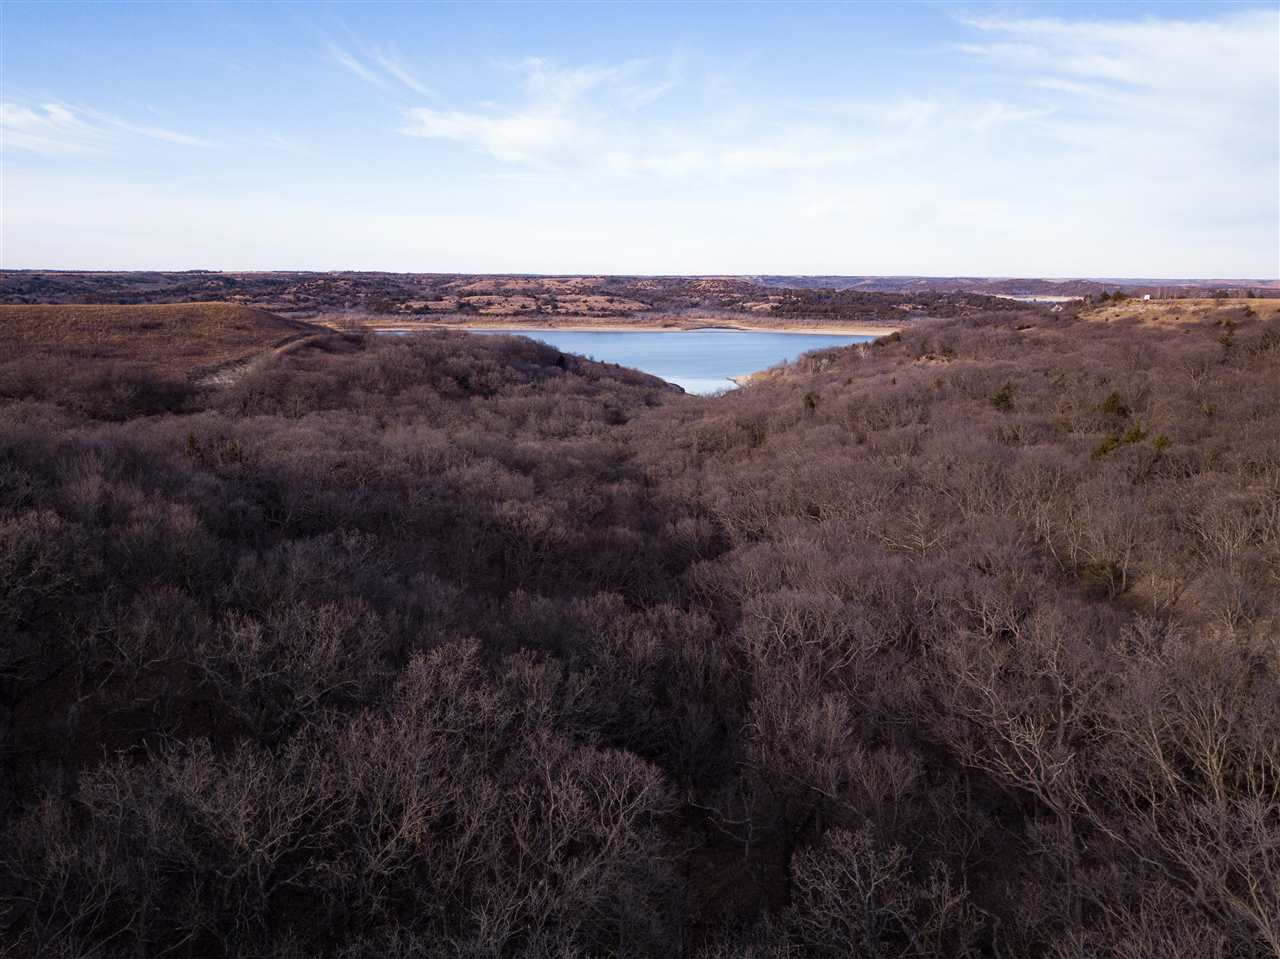 Here is your chance to own breathtaking, scenic acreage close to Manhattan. Enjoy panoramic views of the Flint Hills and Tuttle Creek lake, all nestled within native pasture land and wooded hillsides. Perfect location for a custom build site and/or hunting/hiking getaways.   PLEASE BE SURE TO SHUT THE GATE BEHIND YOU AS THERE ARE HORSES ON THE PROPERTY!   *Be sure to click on the virtual tour link to view video of the property.*  Riley County may require a site plan to be approved to obtain a building permit.